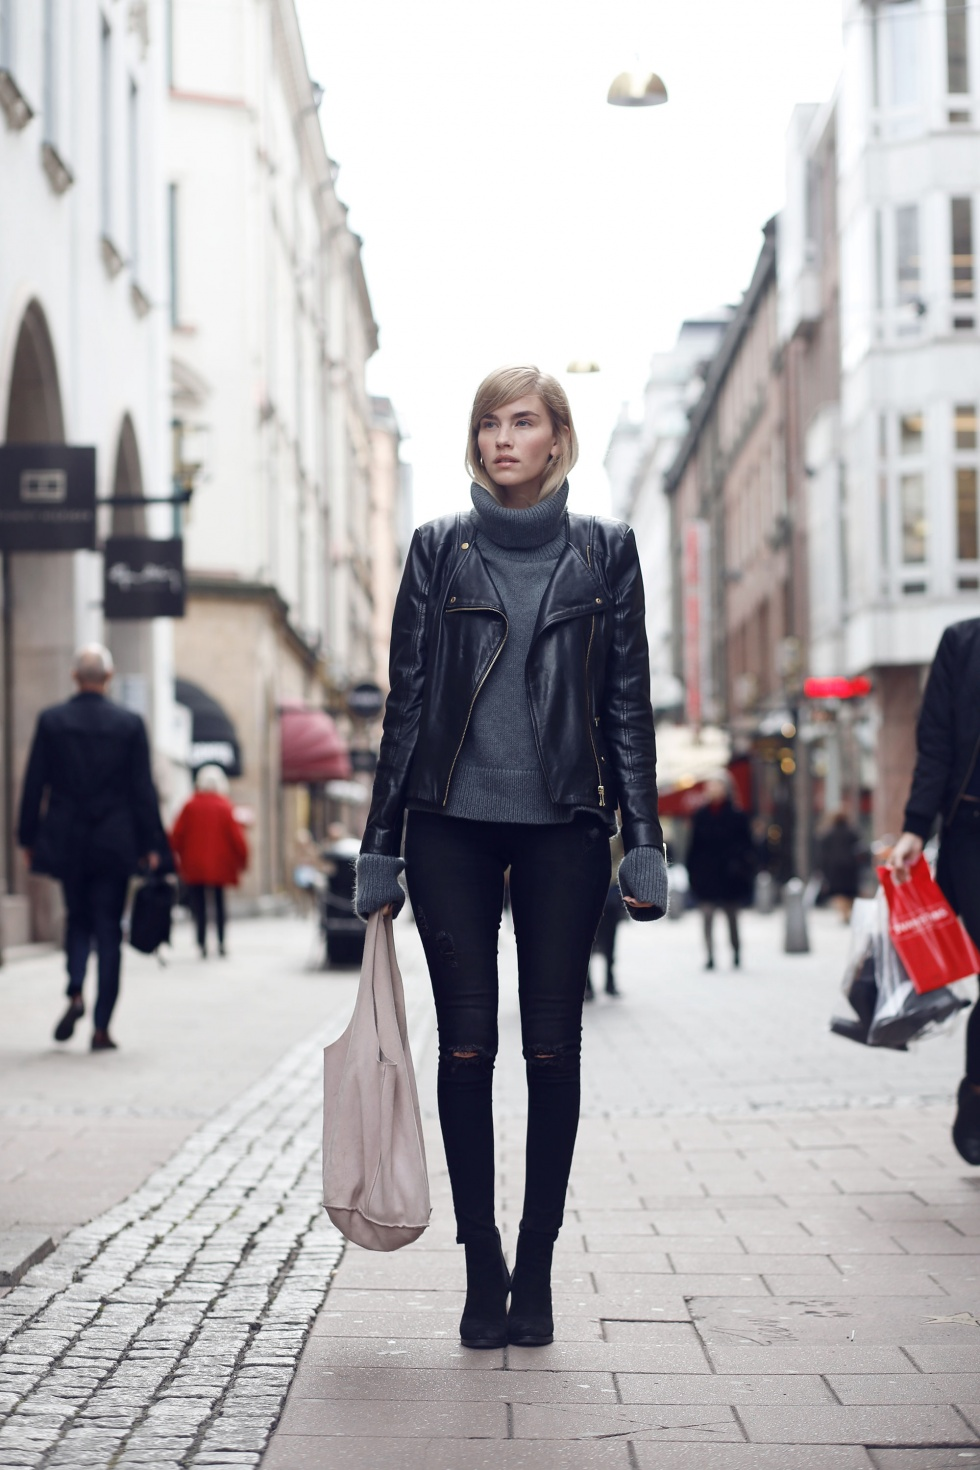 Elsa Ekman wears an extra long sleeve polo neck pullover with a gorgeous leather jacket and simple black jeans. Jacket: Mango, Polo/Bag Hunkydory, Jeans: Cheap Monday, Shoes: Zalando.